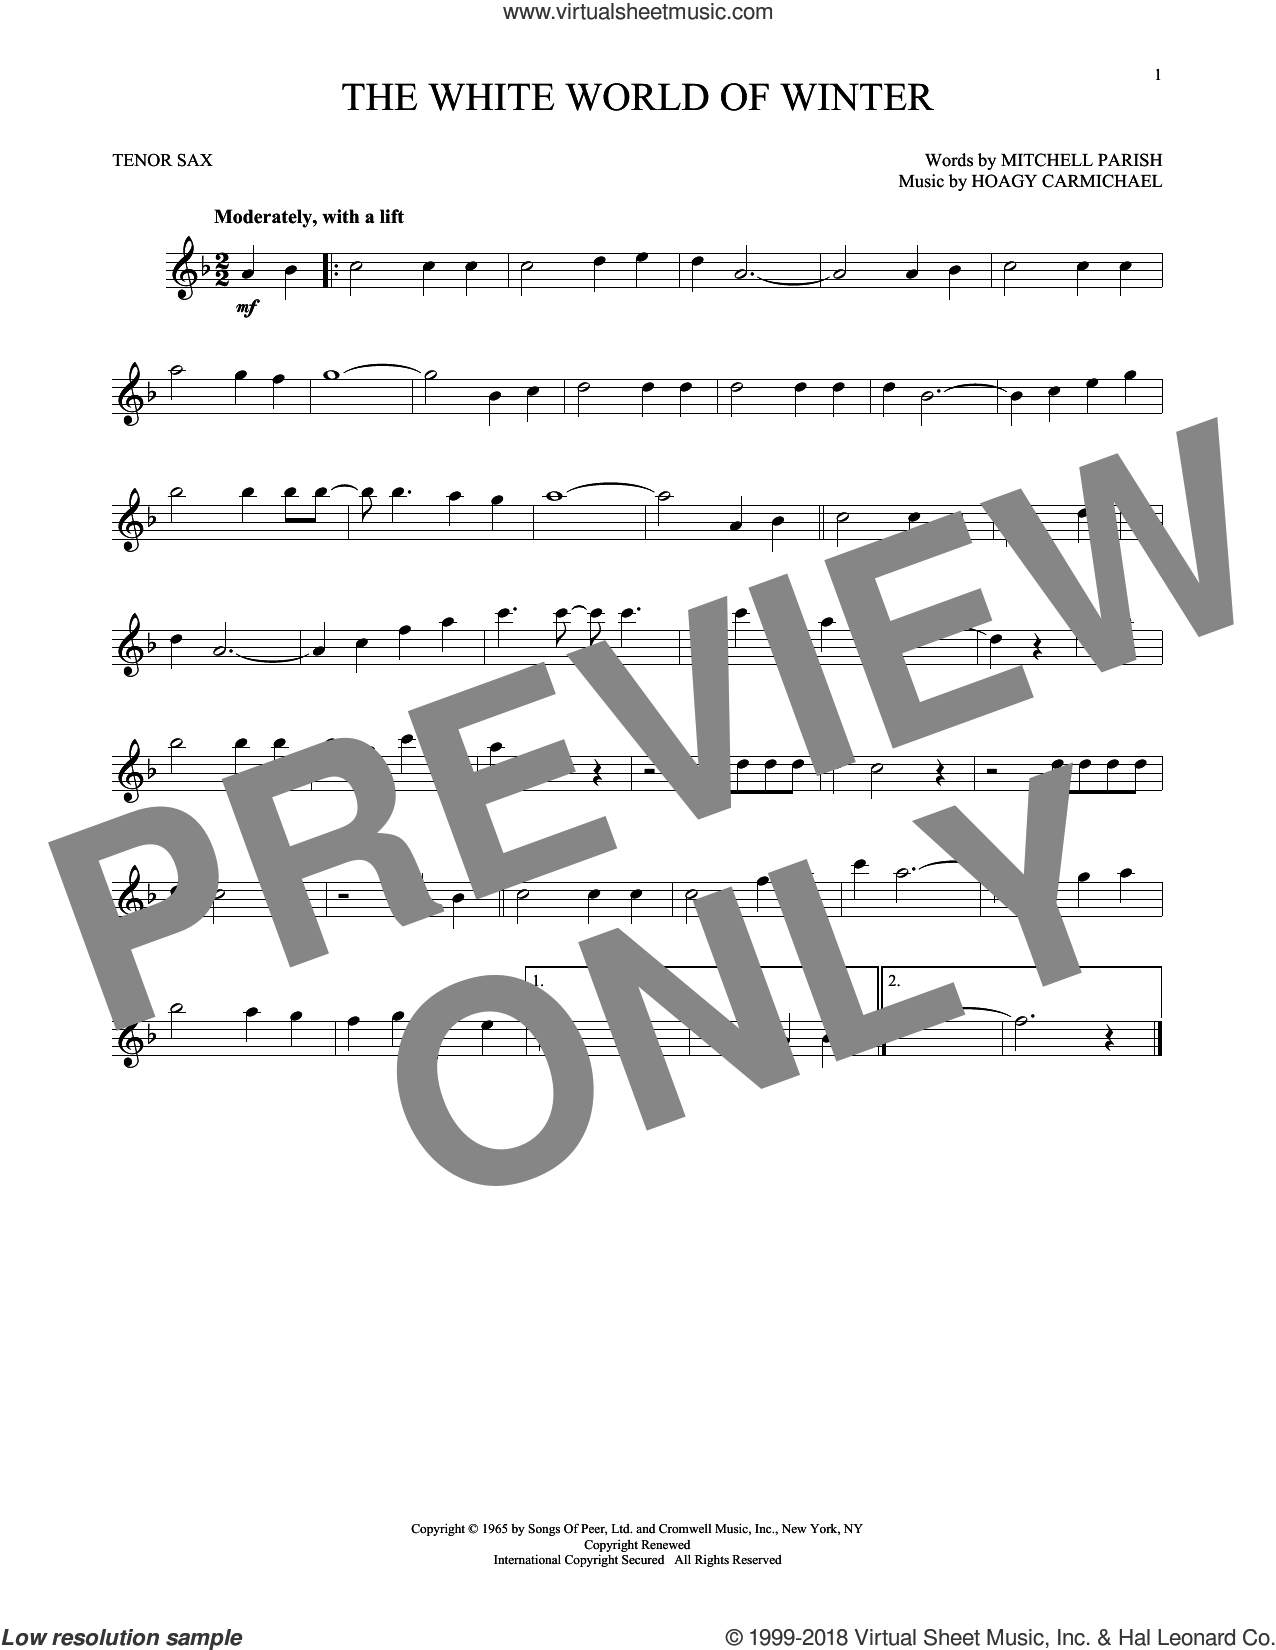 The White World Of Winter sheet music for tenor saxophone solo by Hoagy Carmichael and Mitchell Parish, intermediate skill level